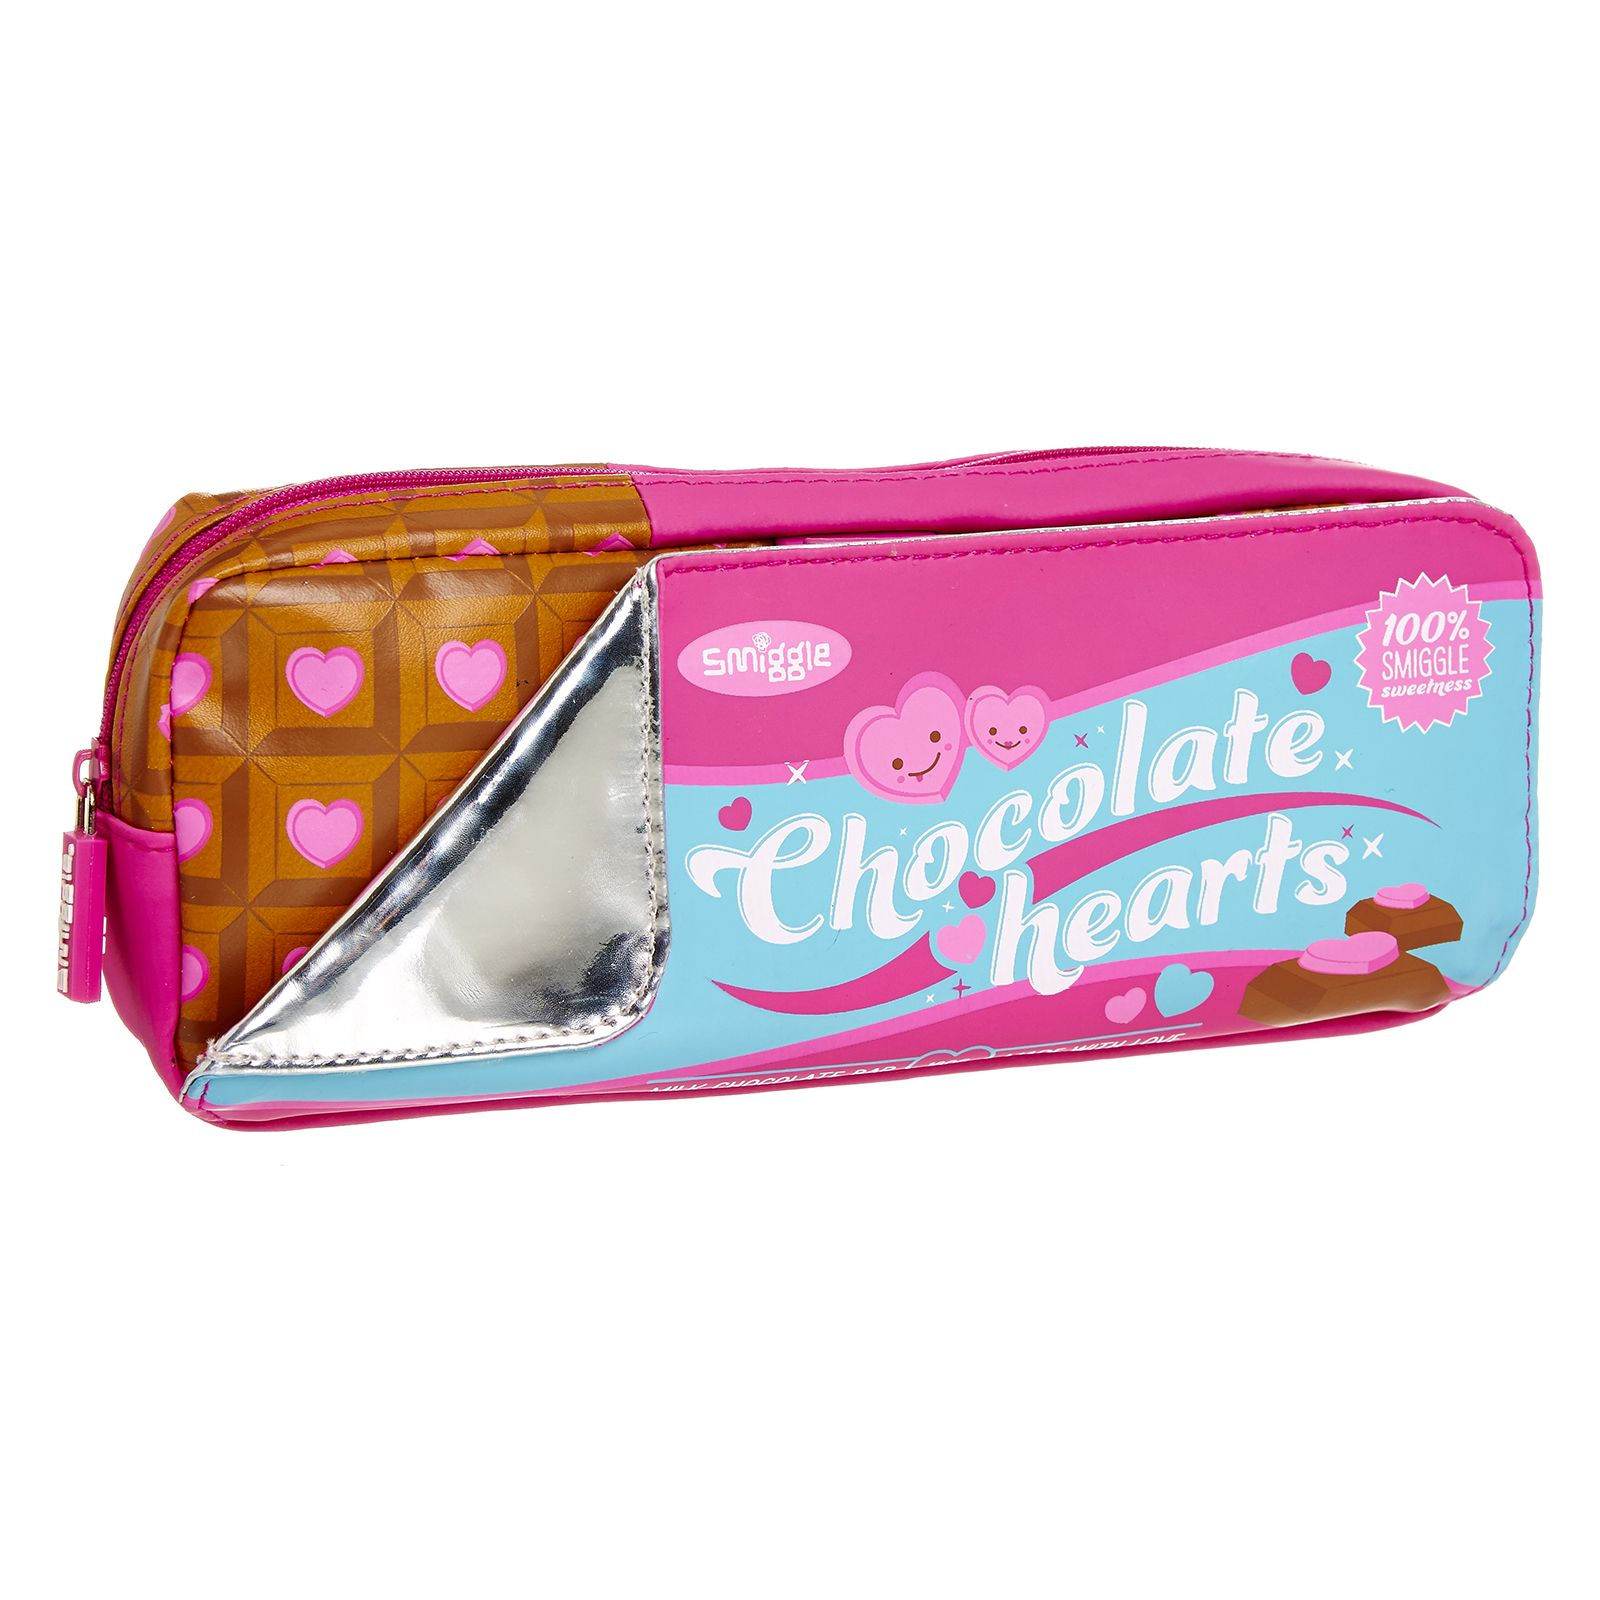 Image for Chocolate Pencil Case from Smiggle UK  sc 1 st  Pinterest & Image for Yum Fluffy Pencil Case from Smiggle | Cute Products ... Aboutintivar.Com